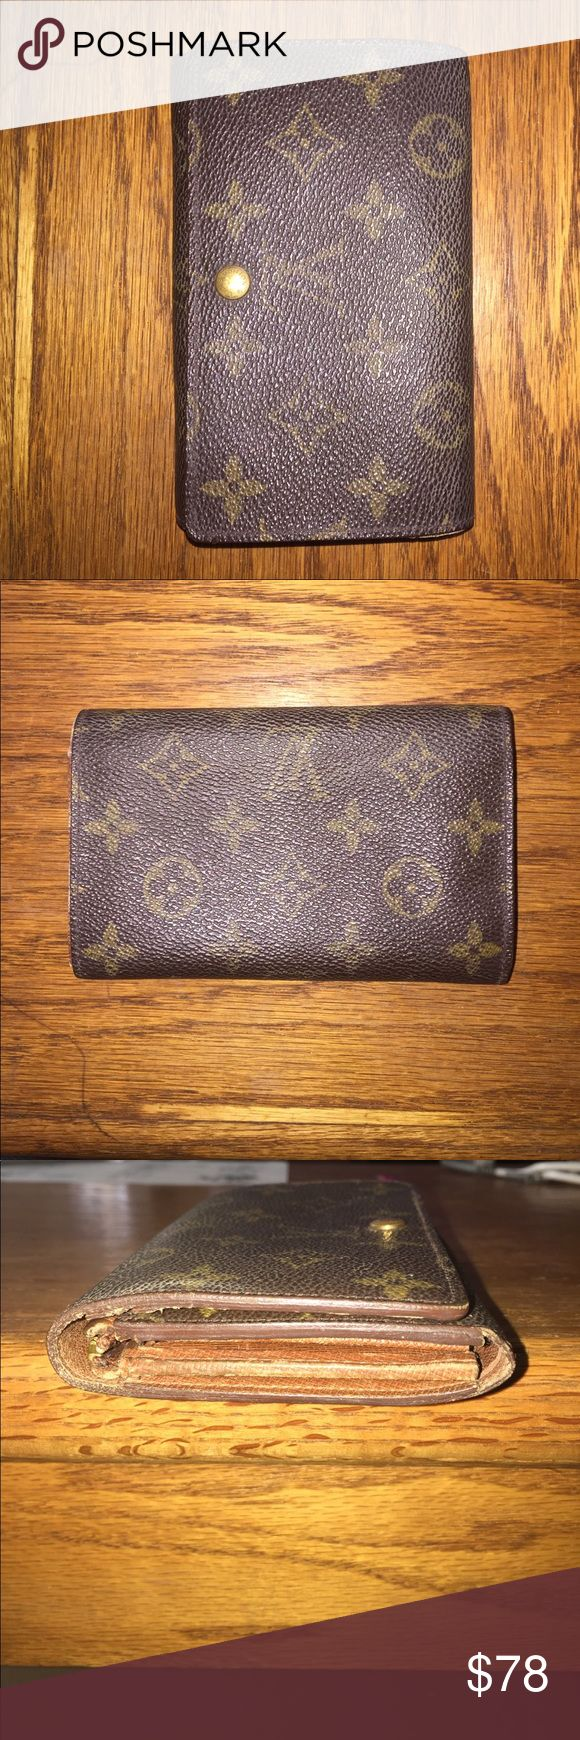 Authentic Louis Vuitton wallet Authentic Louis Vuitton snap wallet 5 compartments zipper compartment is broken and missing zipper pull sighns of wear. No rips or tears stitching is good just needs zipper repair Louis Vuitton Bags Wallets